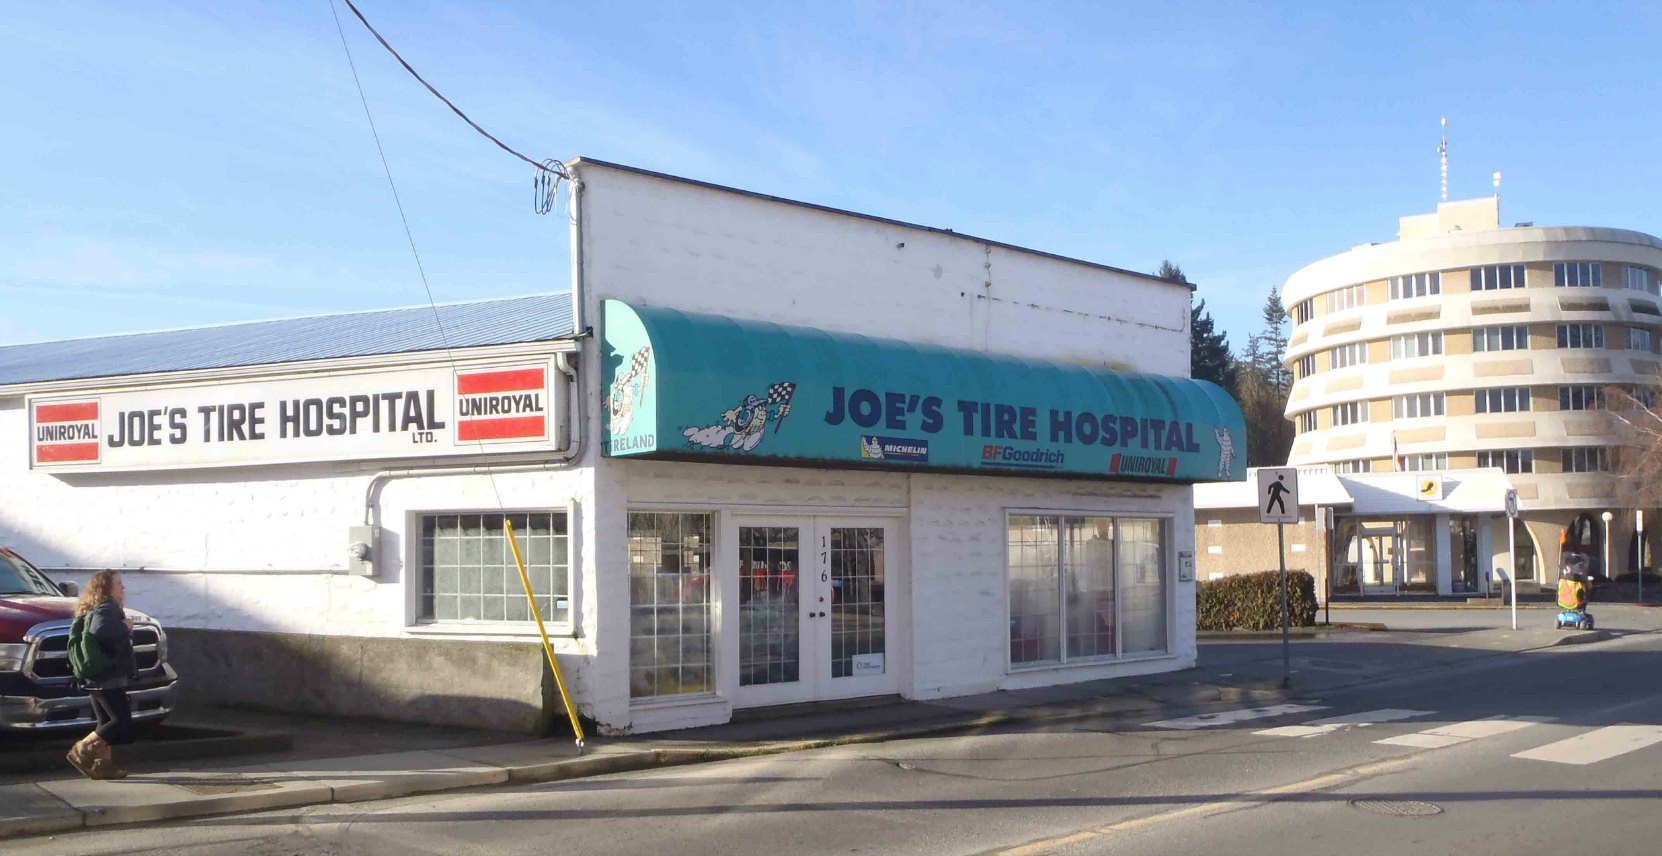 Joe's Tire Hospital, 176 Government Street